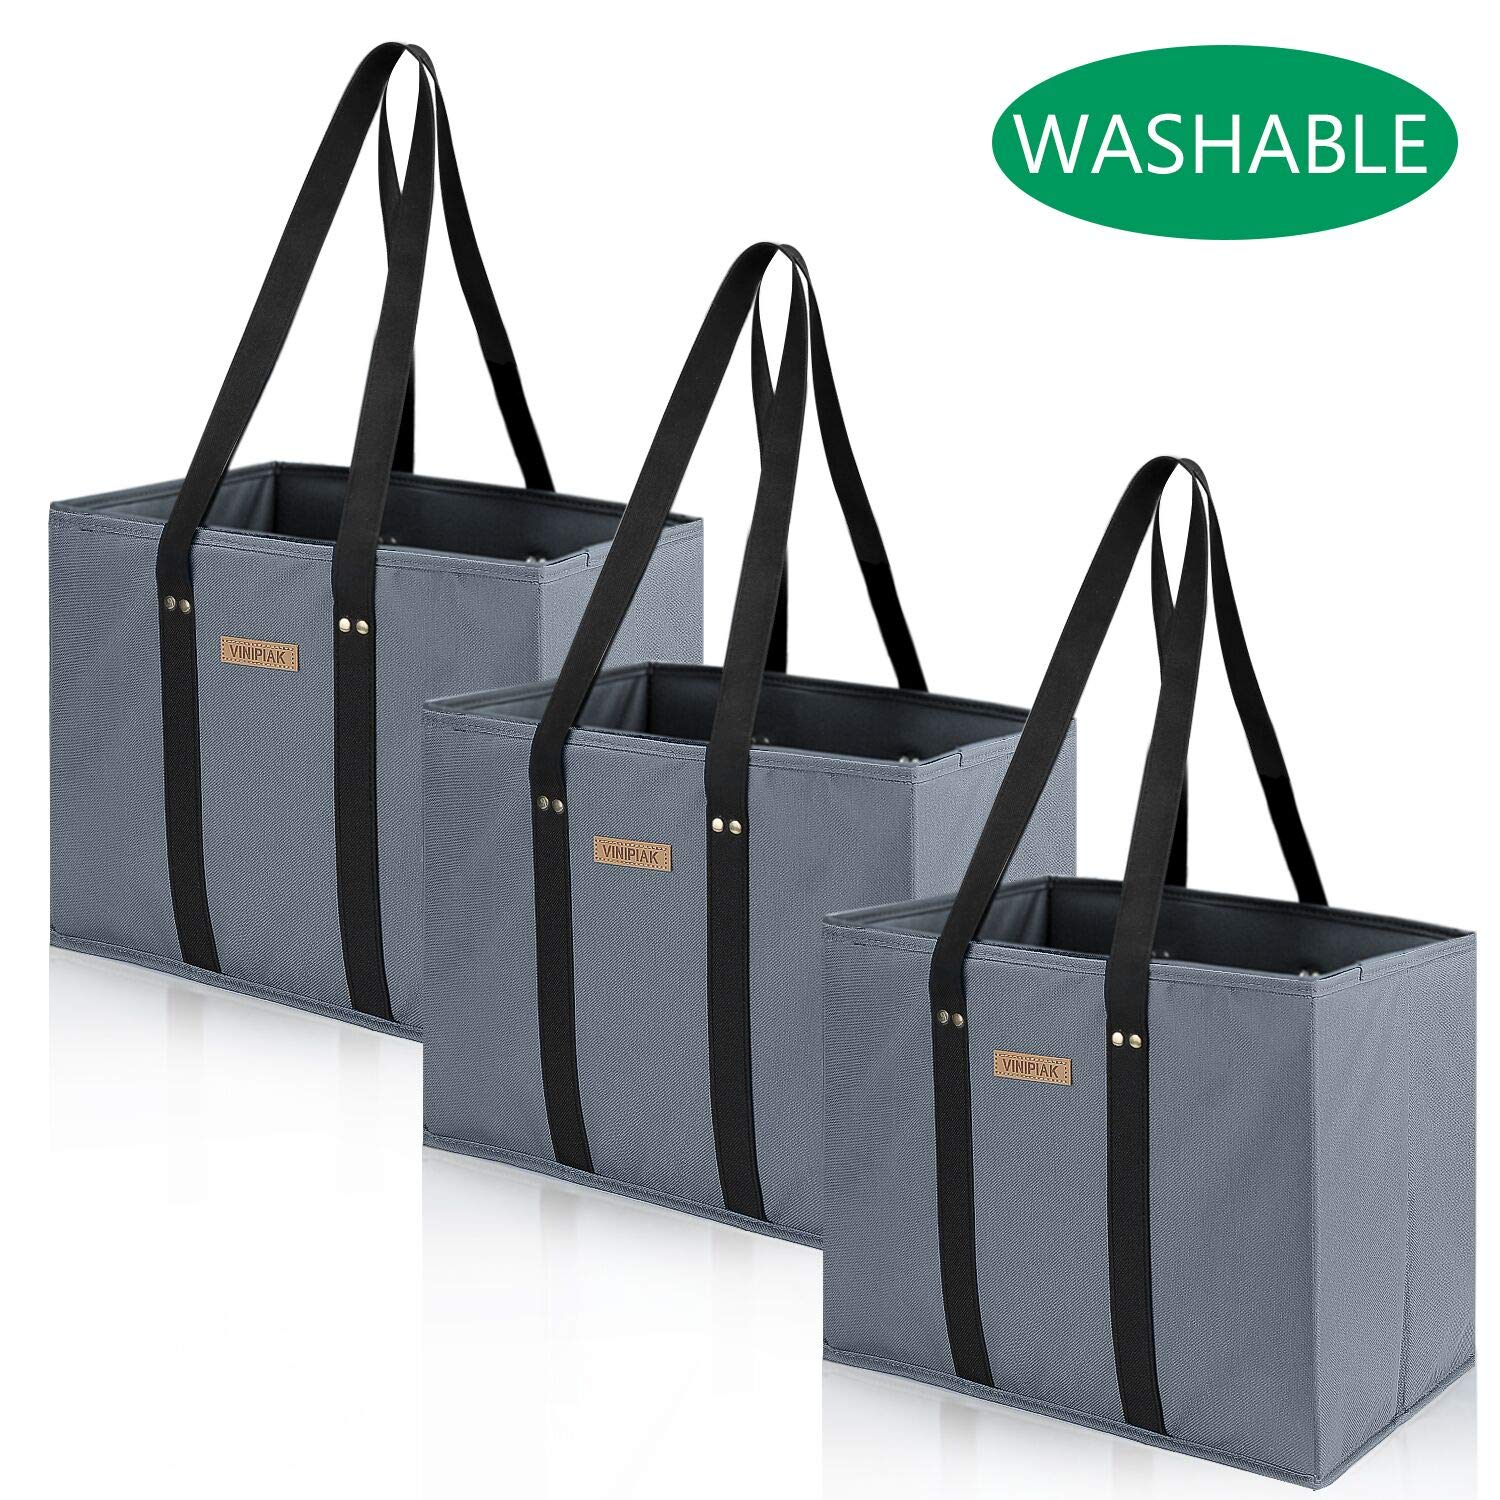 Washable Reusable Grocery Shopping Bags Oxford Cloth Made Foldable Large Durable Sanding Tote with Reinforced Sides and Bottoms(3 Pack - Gray) by Vinipiak